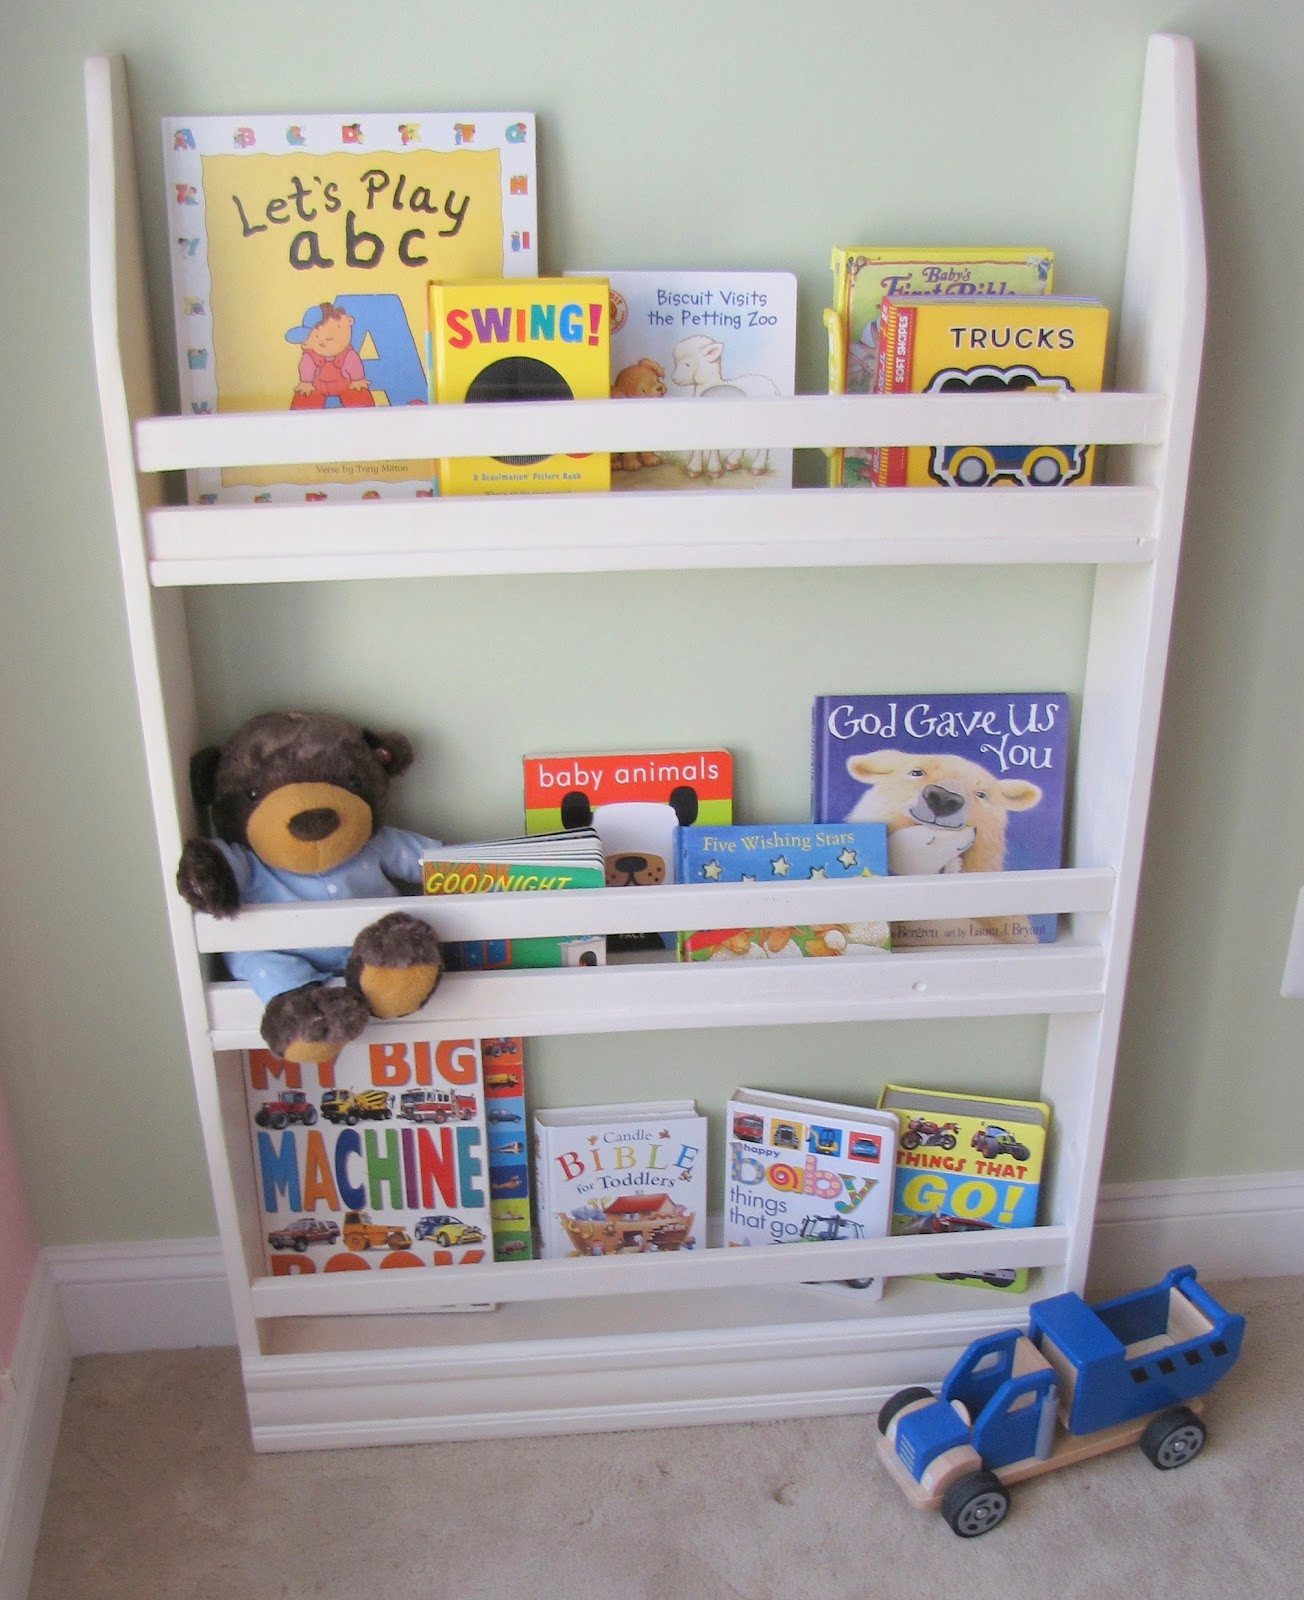 Best ideas about DIY Bookshelf For Kids . Save or Pin Lipstick and Sawdust PB Inspired Bookshelves Now.